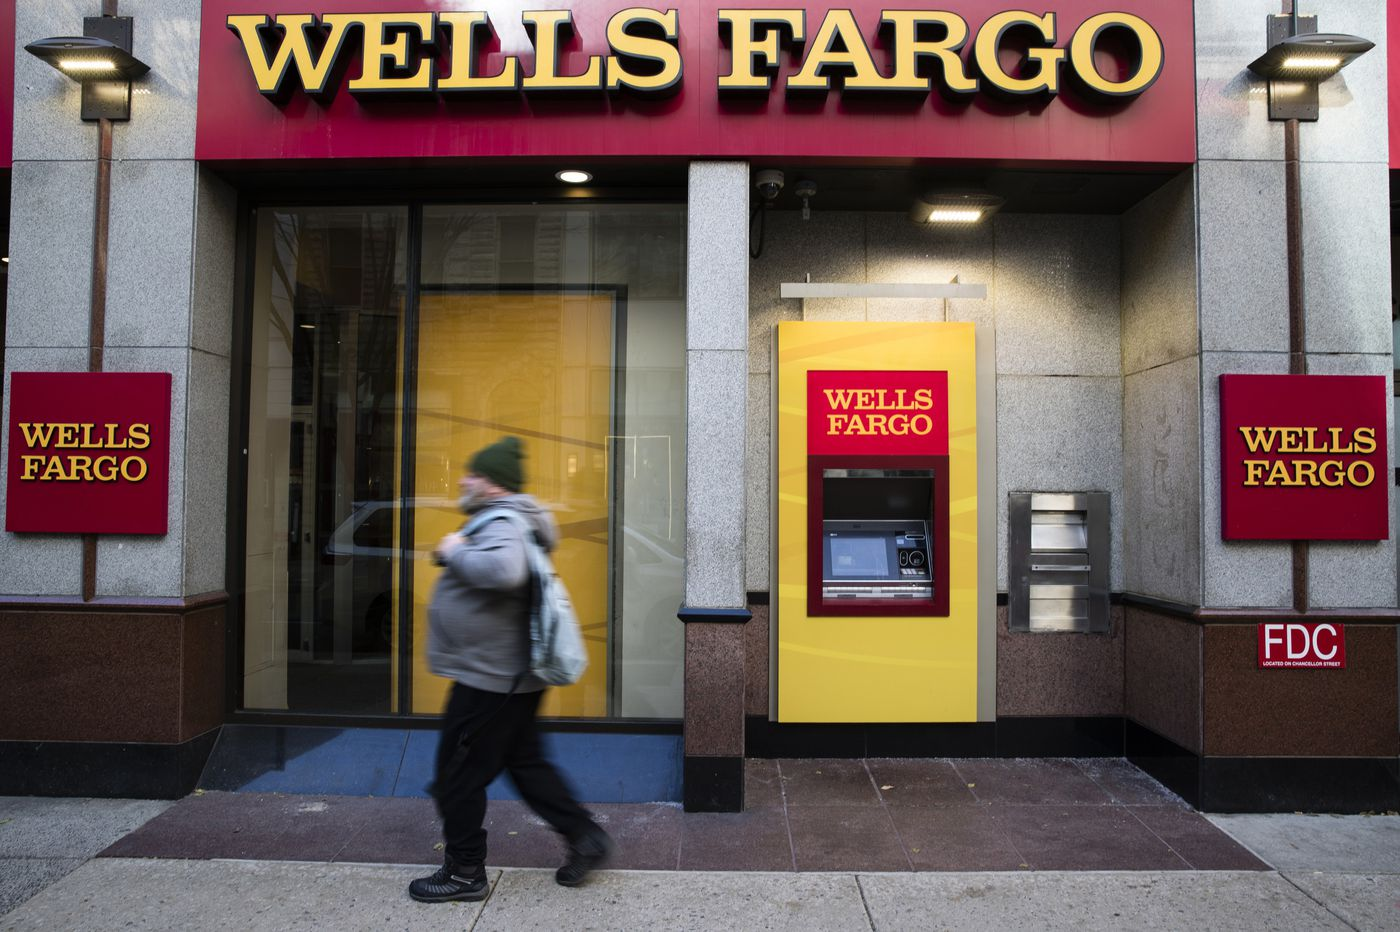 Wells Fargo says fees will be reversed for customers after data center fire snags online access